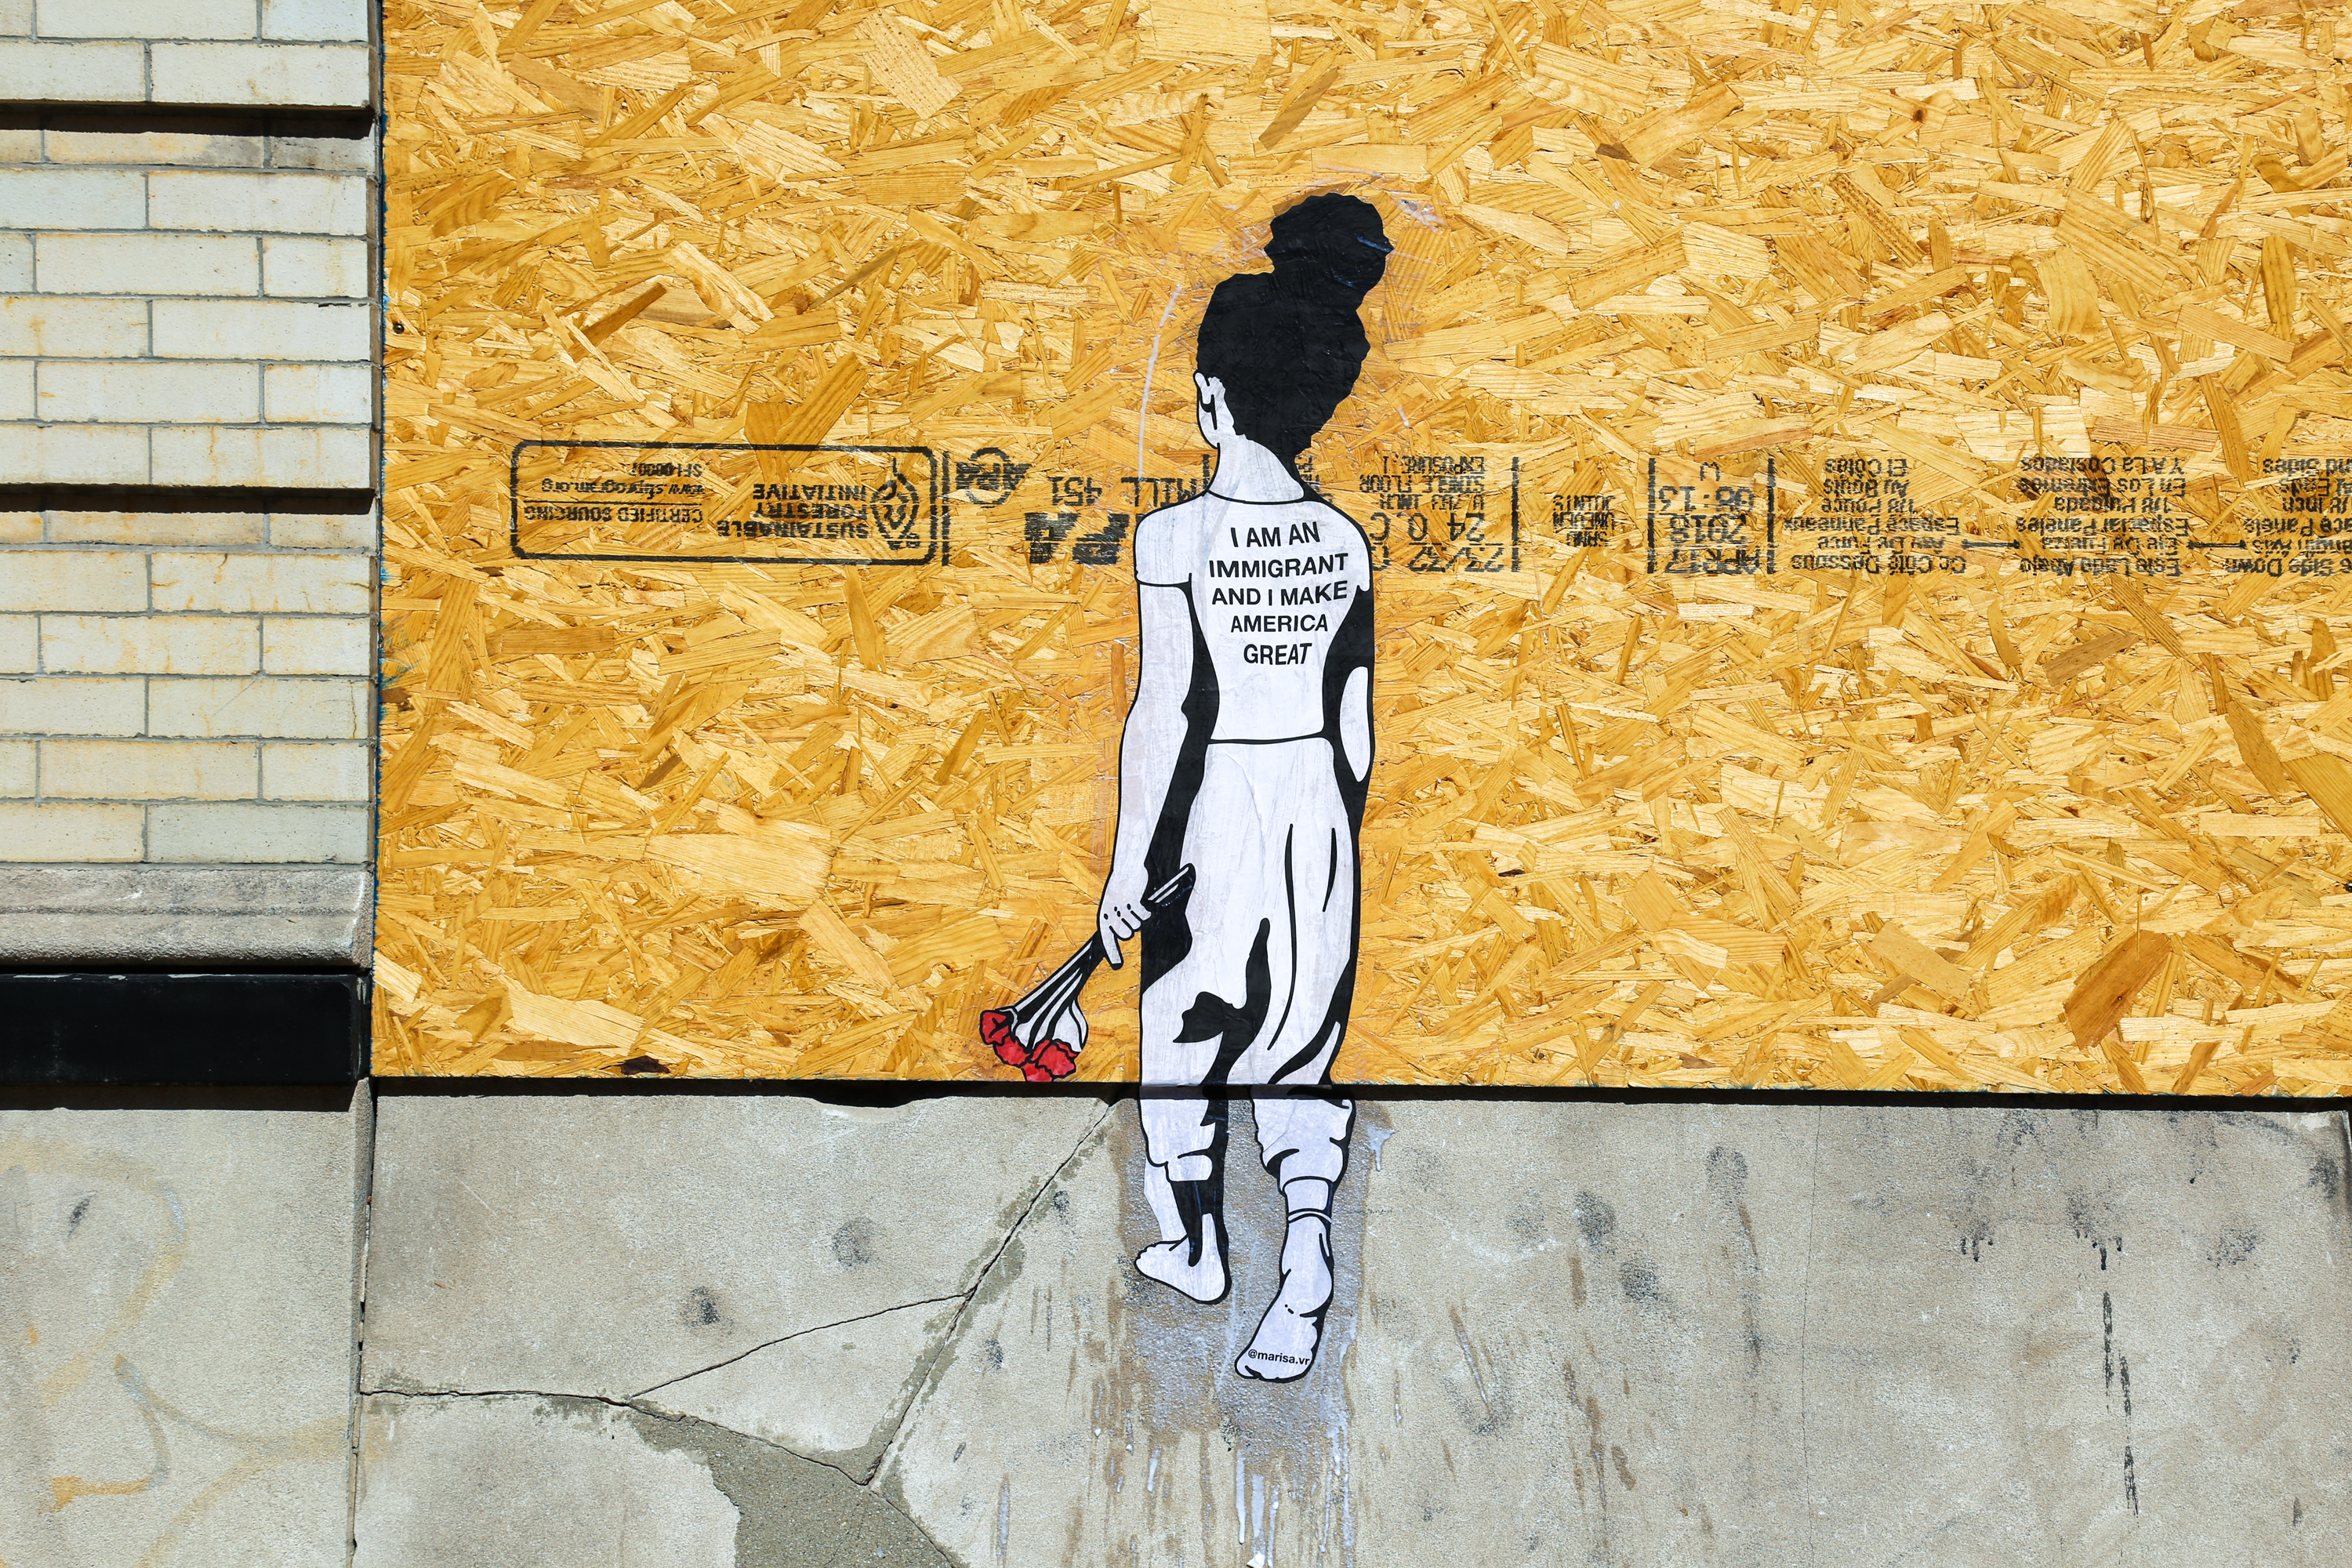 To the Polls is set to feature 10 local artists, including Marisa Velázquez-Rivas, whose wheat paste is pictured here. Curator Conrad Benner set out to find participants who were already producing works that encourage civic engagement and/or express political activism.